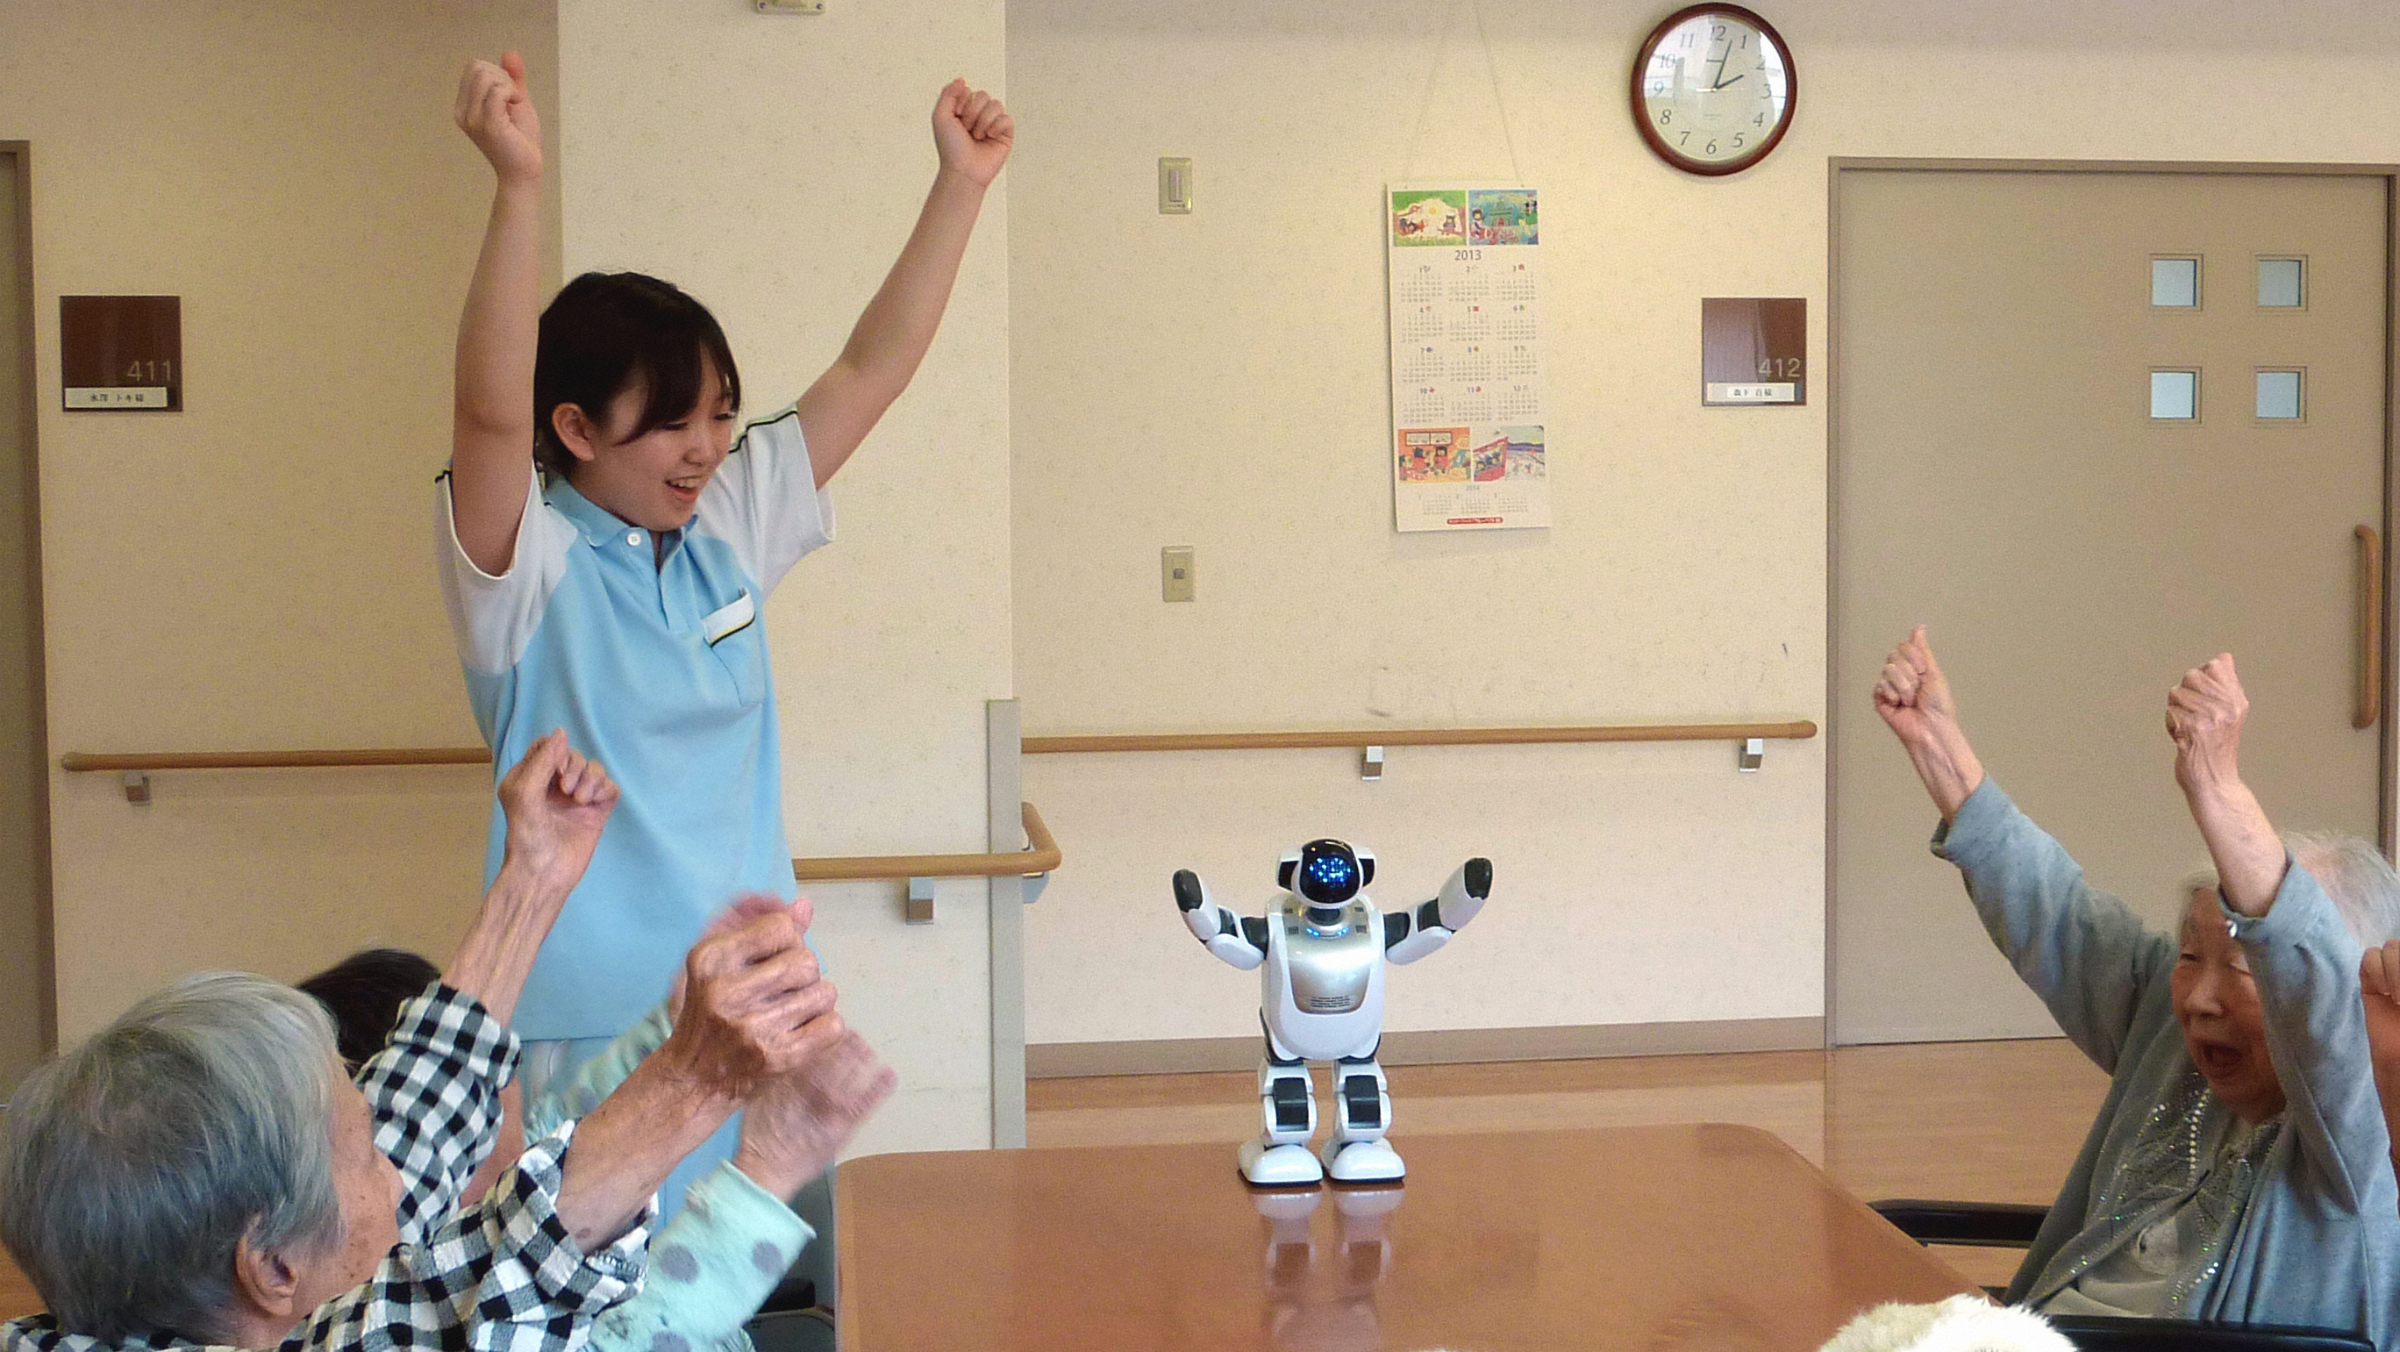 YOKOHAMA, Japan - Residents at the Fuyouen senior citizen's home in Yokohama, Kanagawa Prefecture, interact with Palro, a humanoid robot, on May 10, 2013. Seen in front are two baby seal-like Paro therapy robots. (Kyodo via AP Images